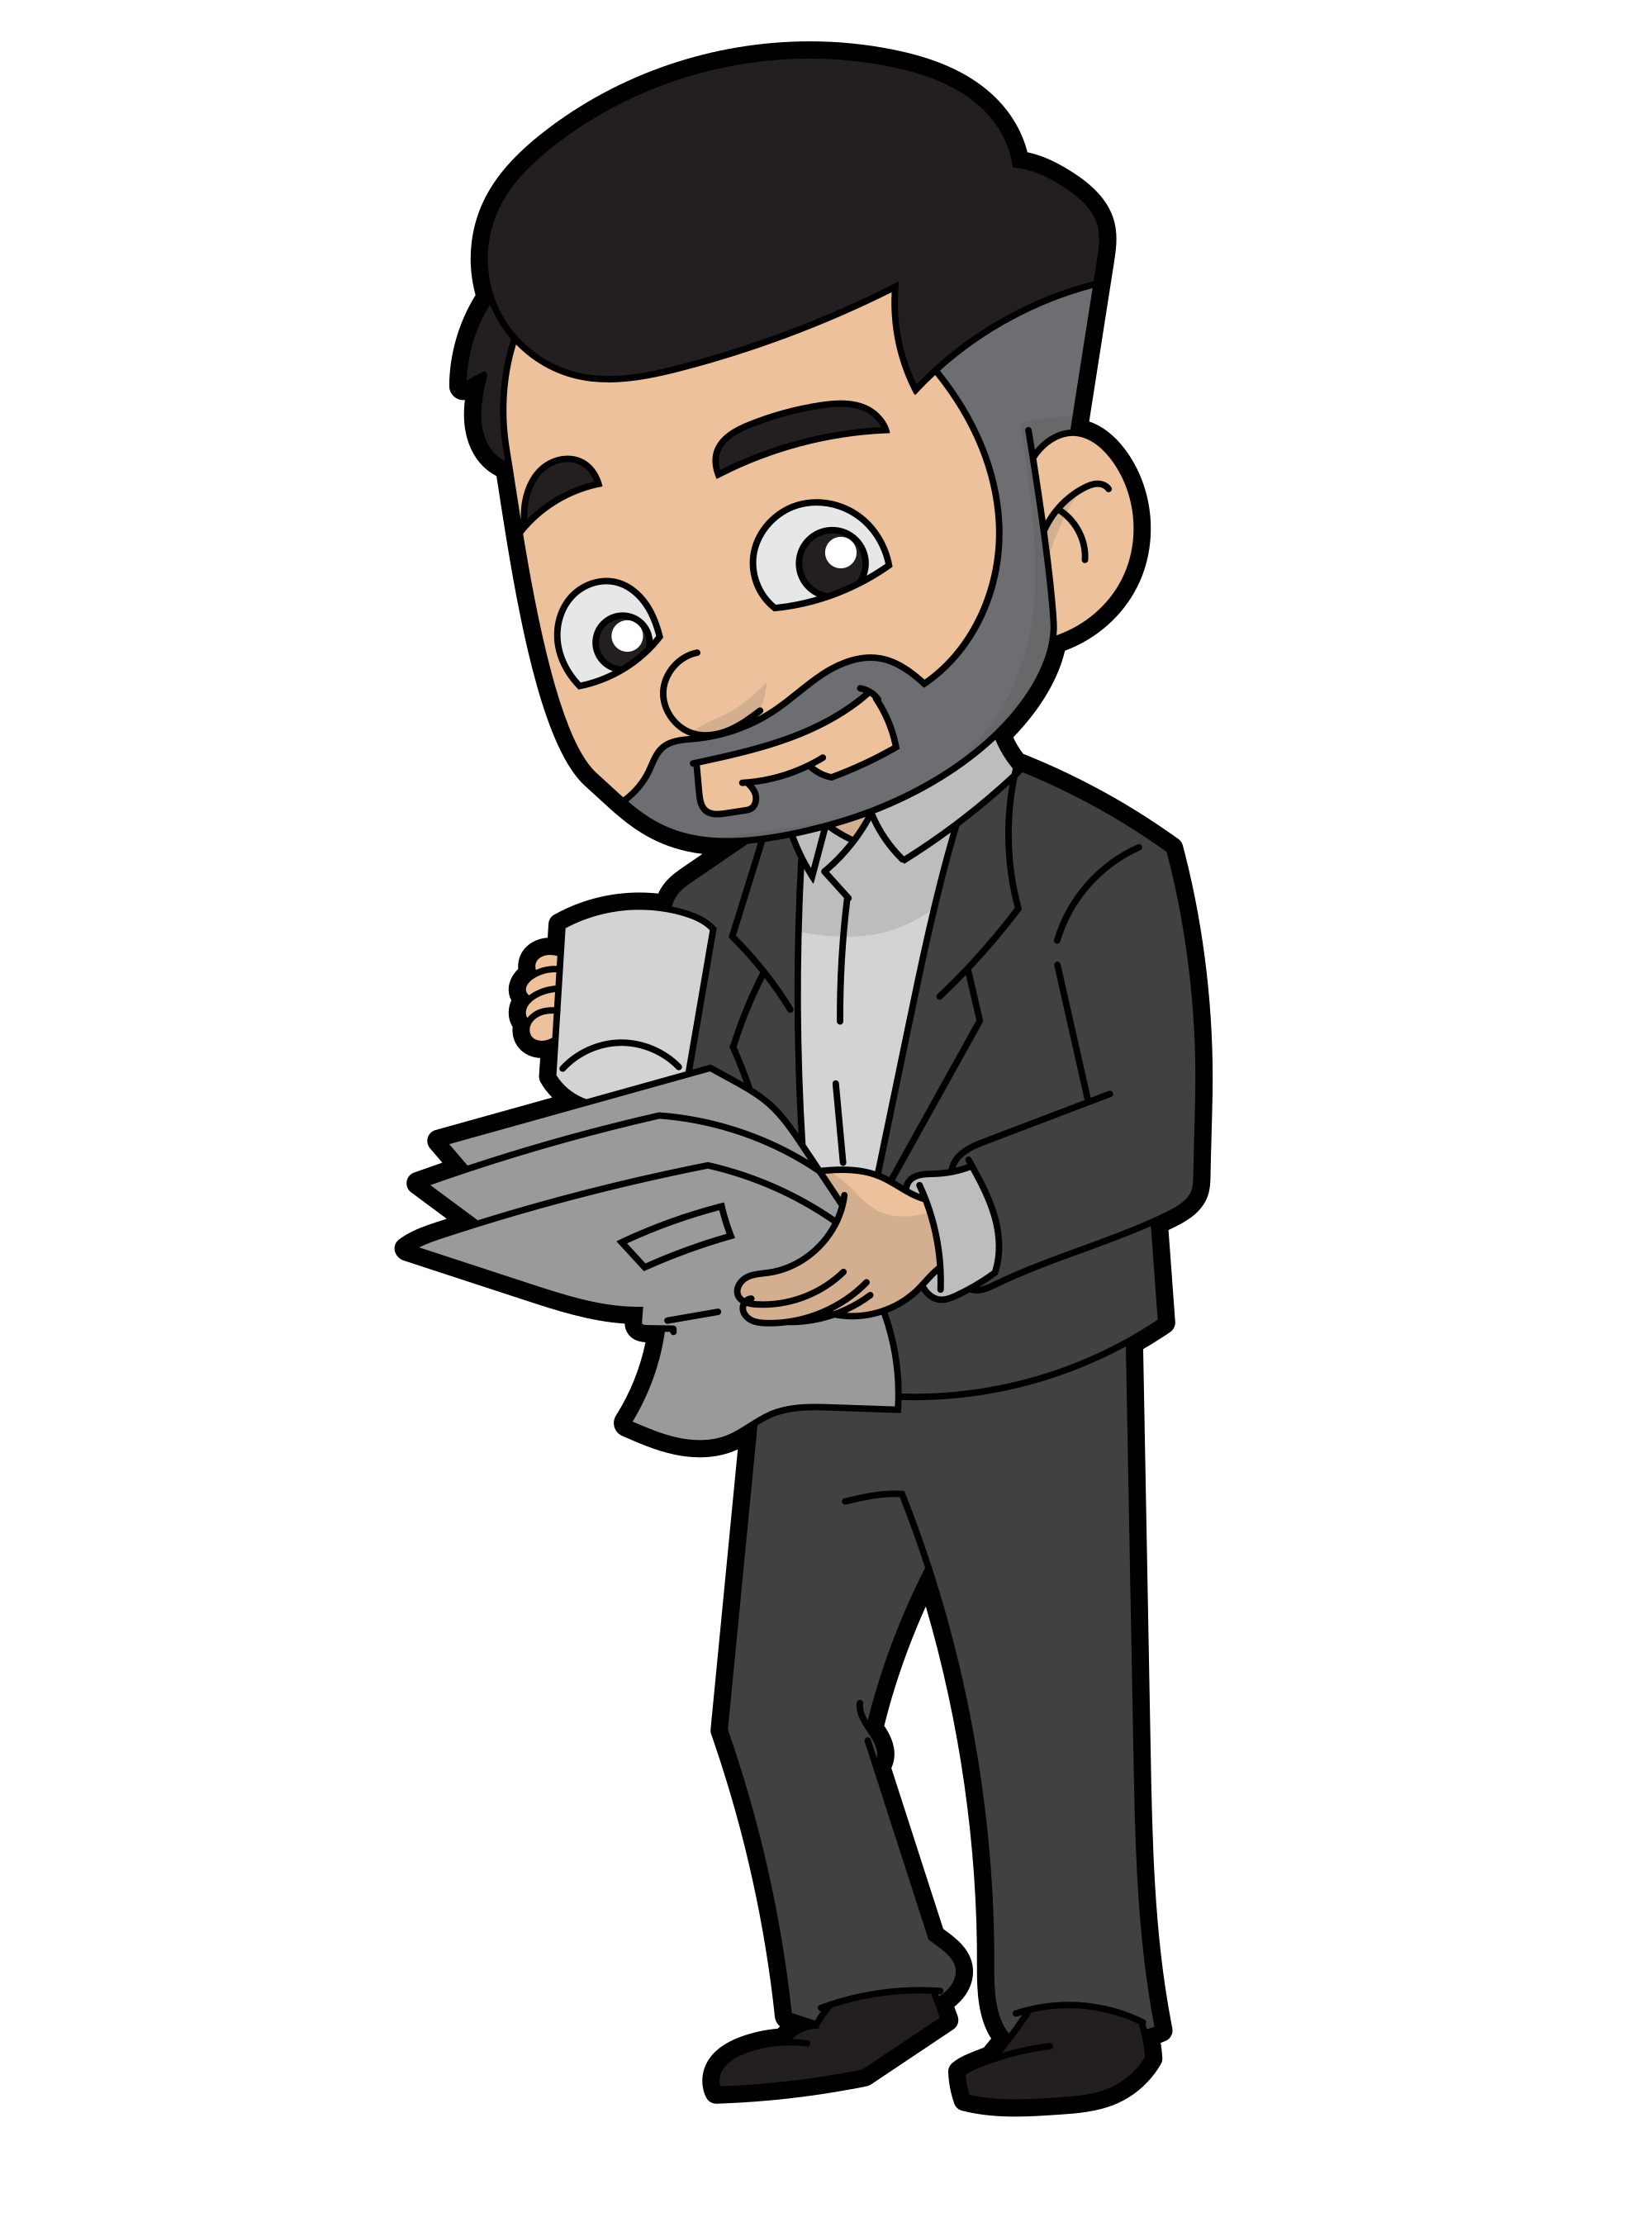 Drinking coffee png. File cartoon businessman svg